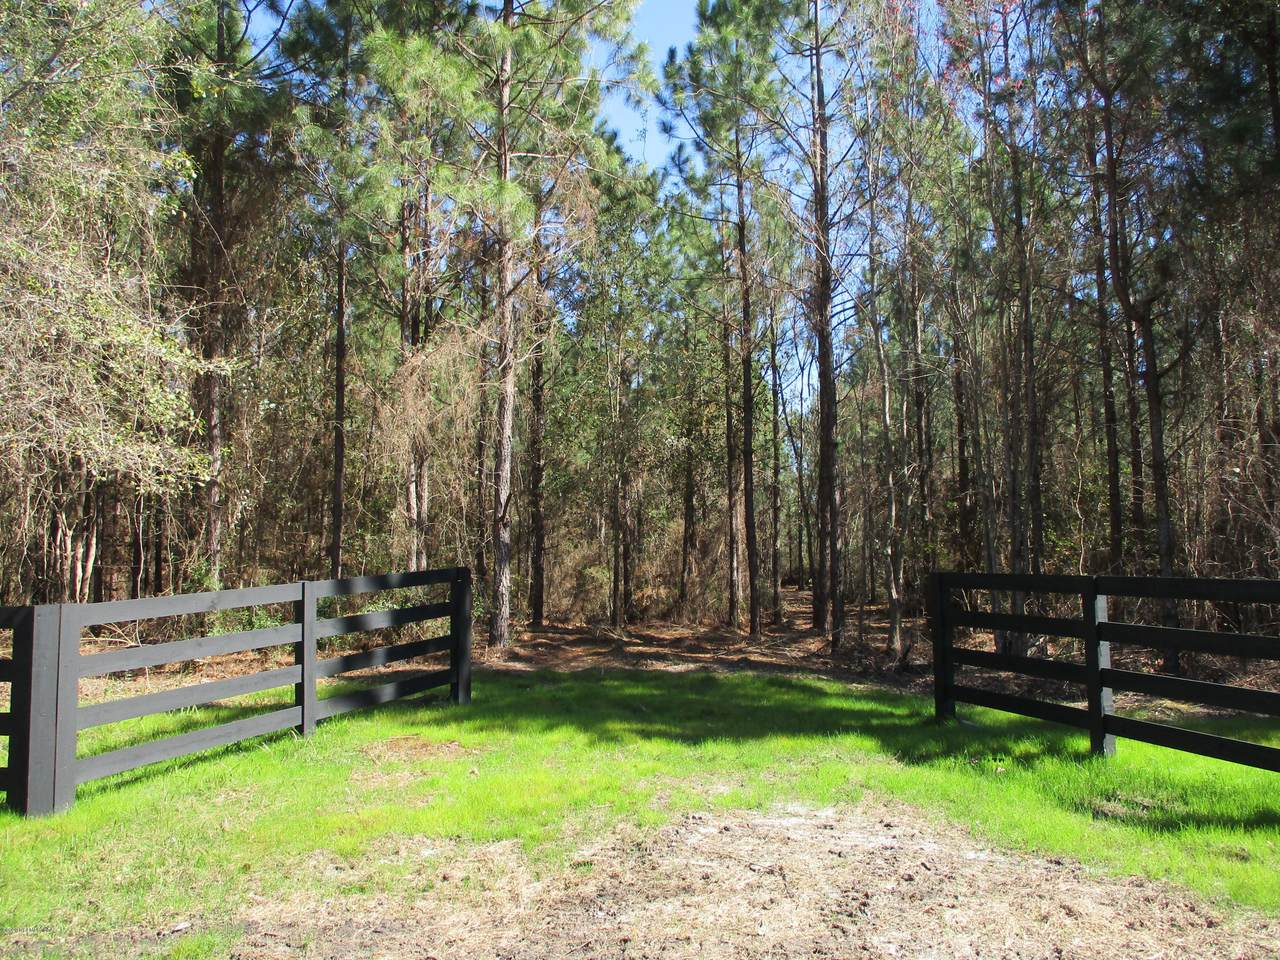 20 ACRES Old Dixie Hwy - Photo 1